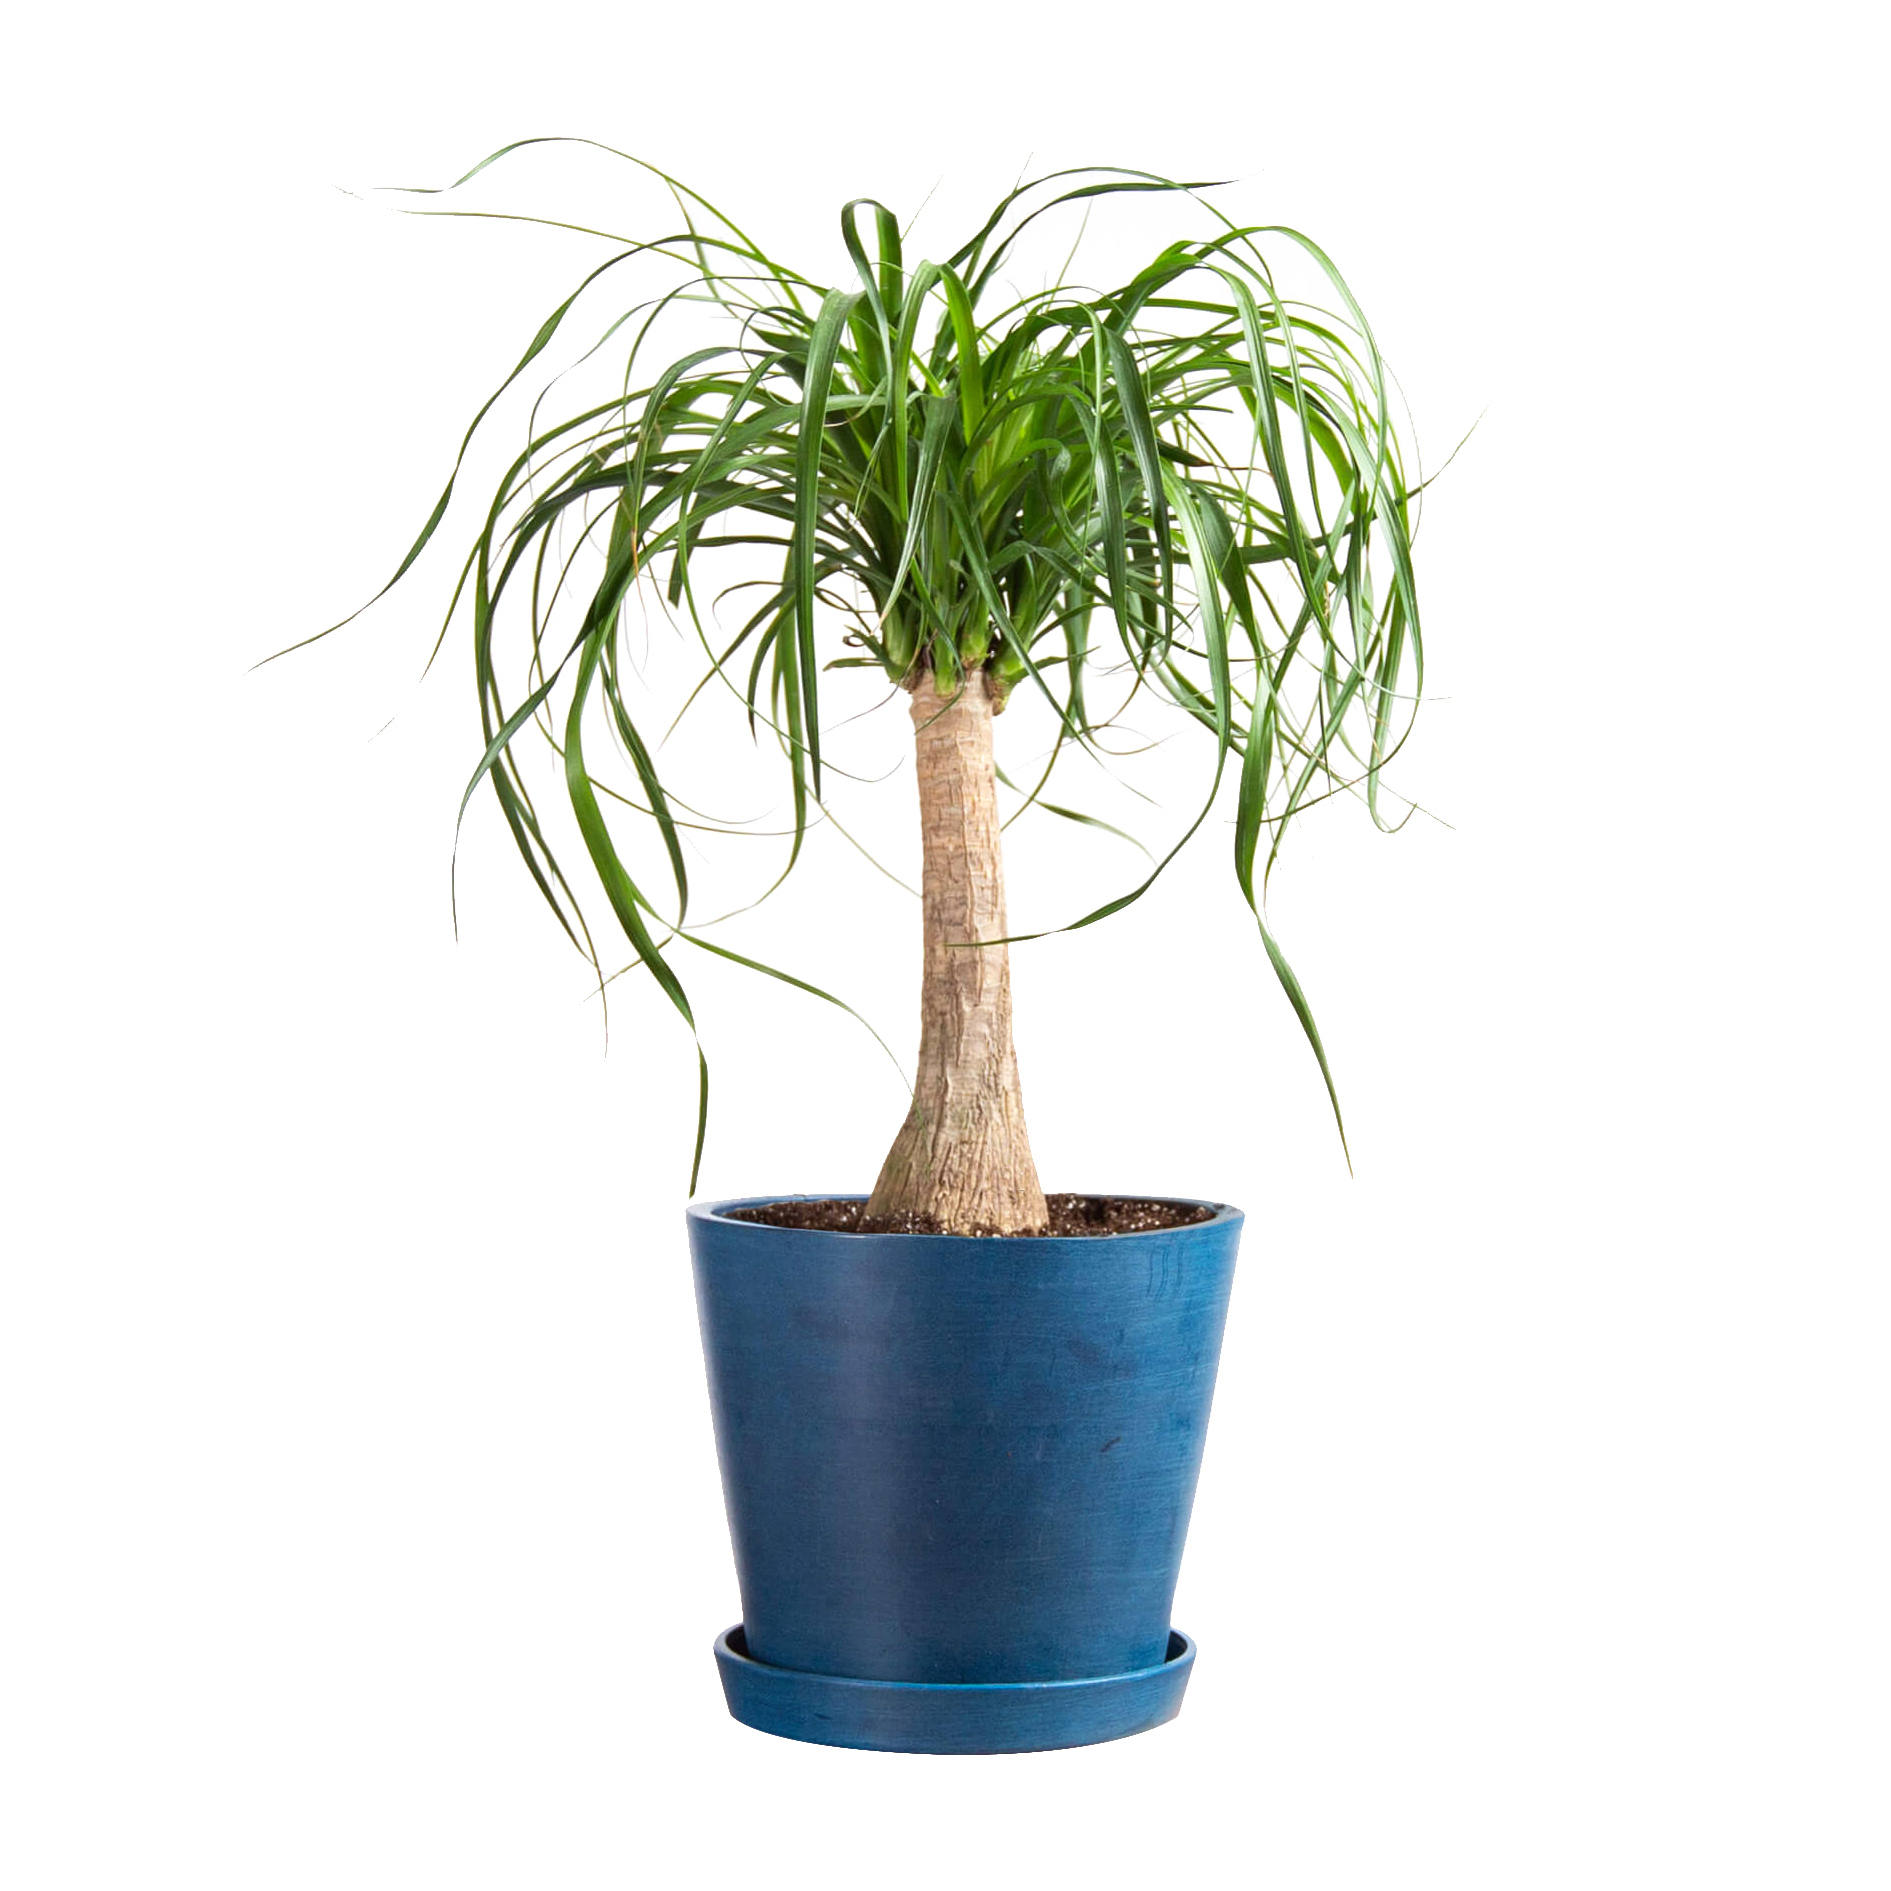 Best Christmas gifts 2019 - Bloomscape Ponytail Palm